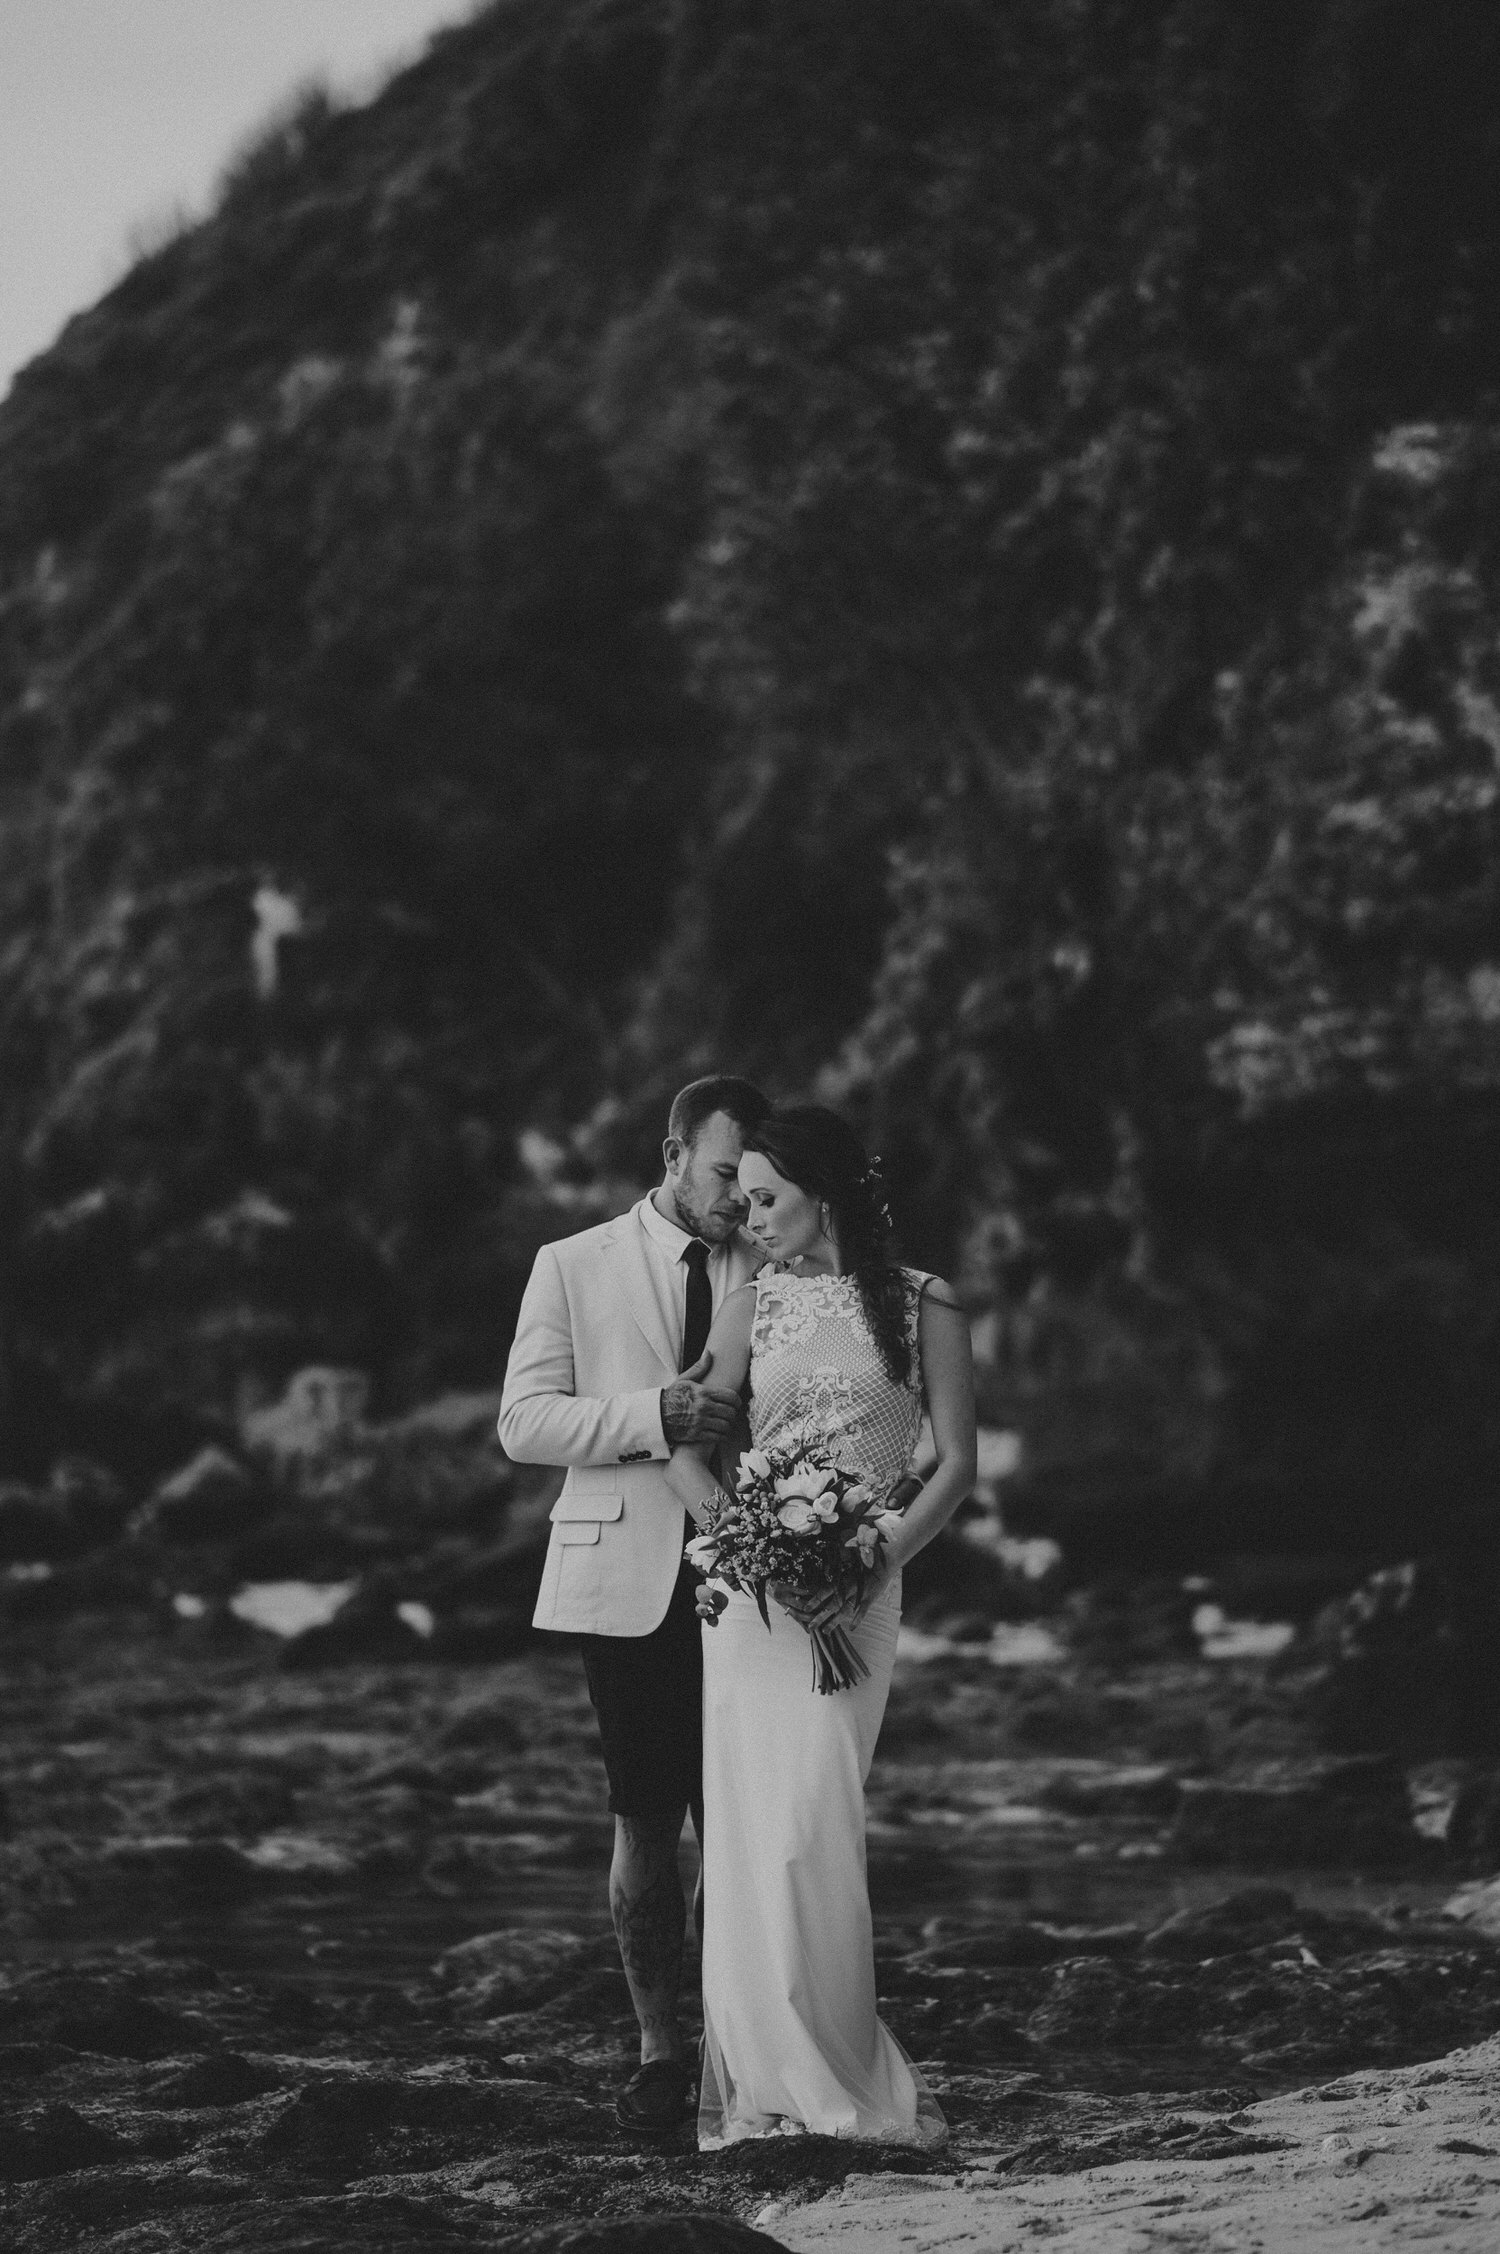 bali wedding destination - the ungasan wedding - bali wedding photographer - diktatphotography - aimee + blake wedding - 107